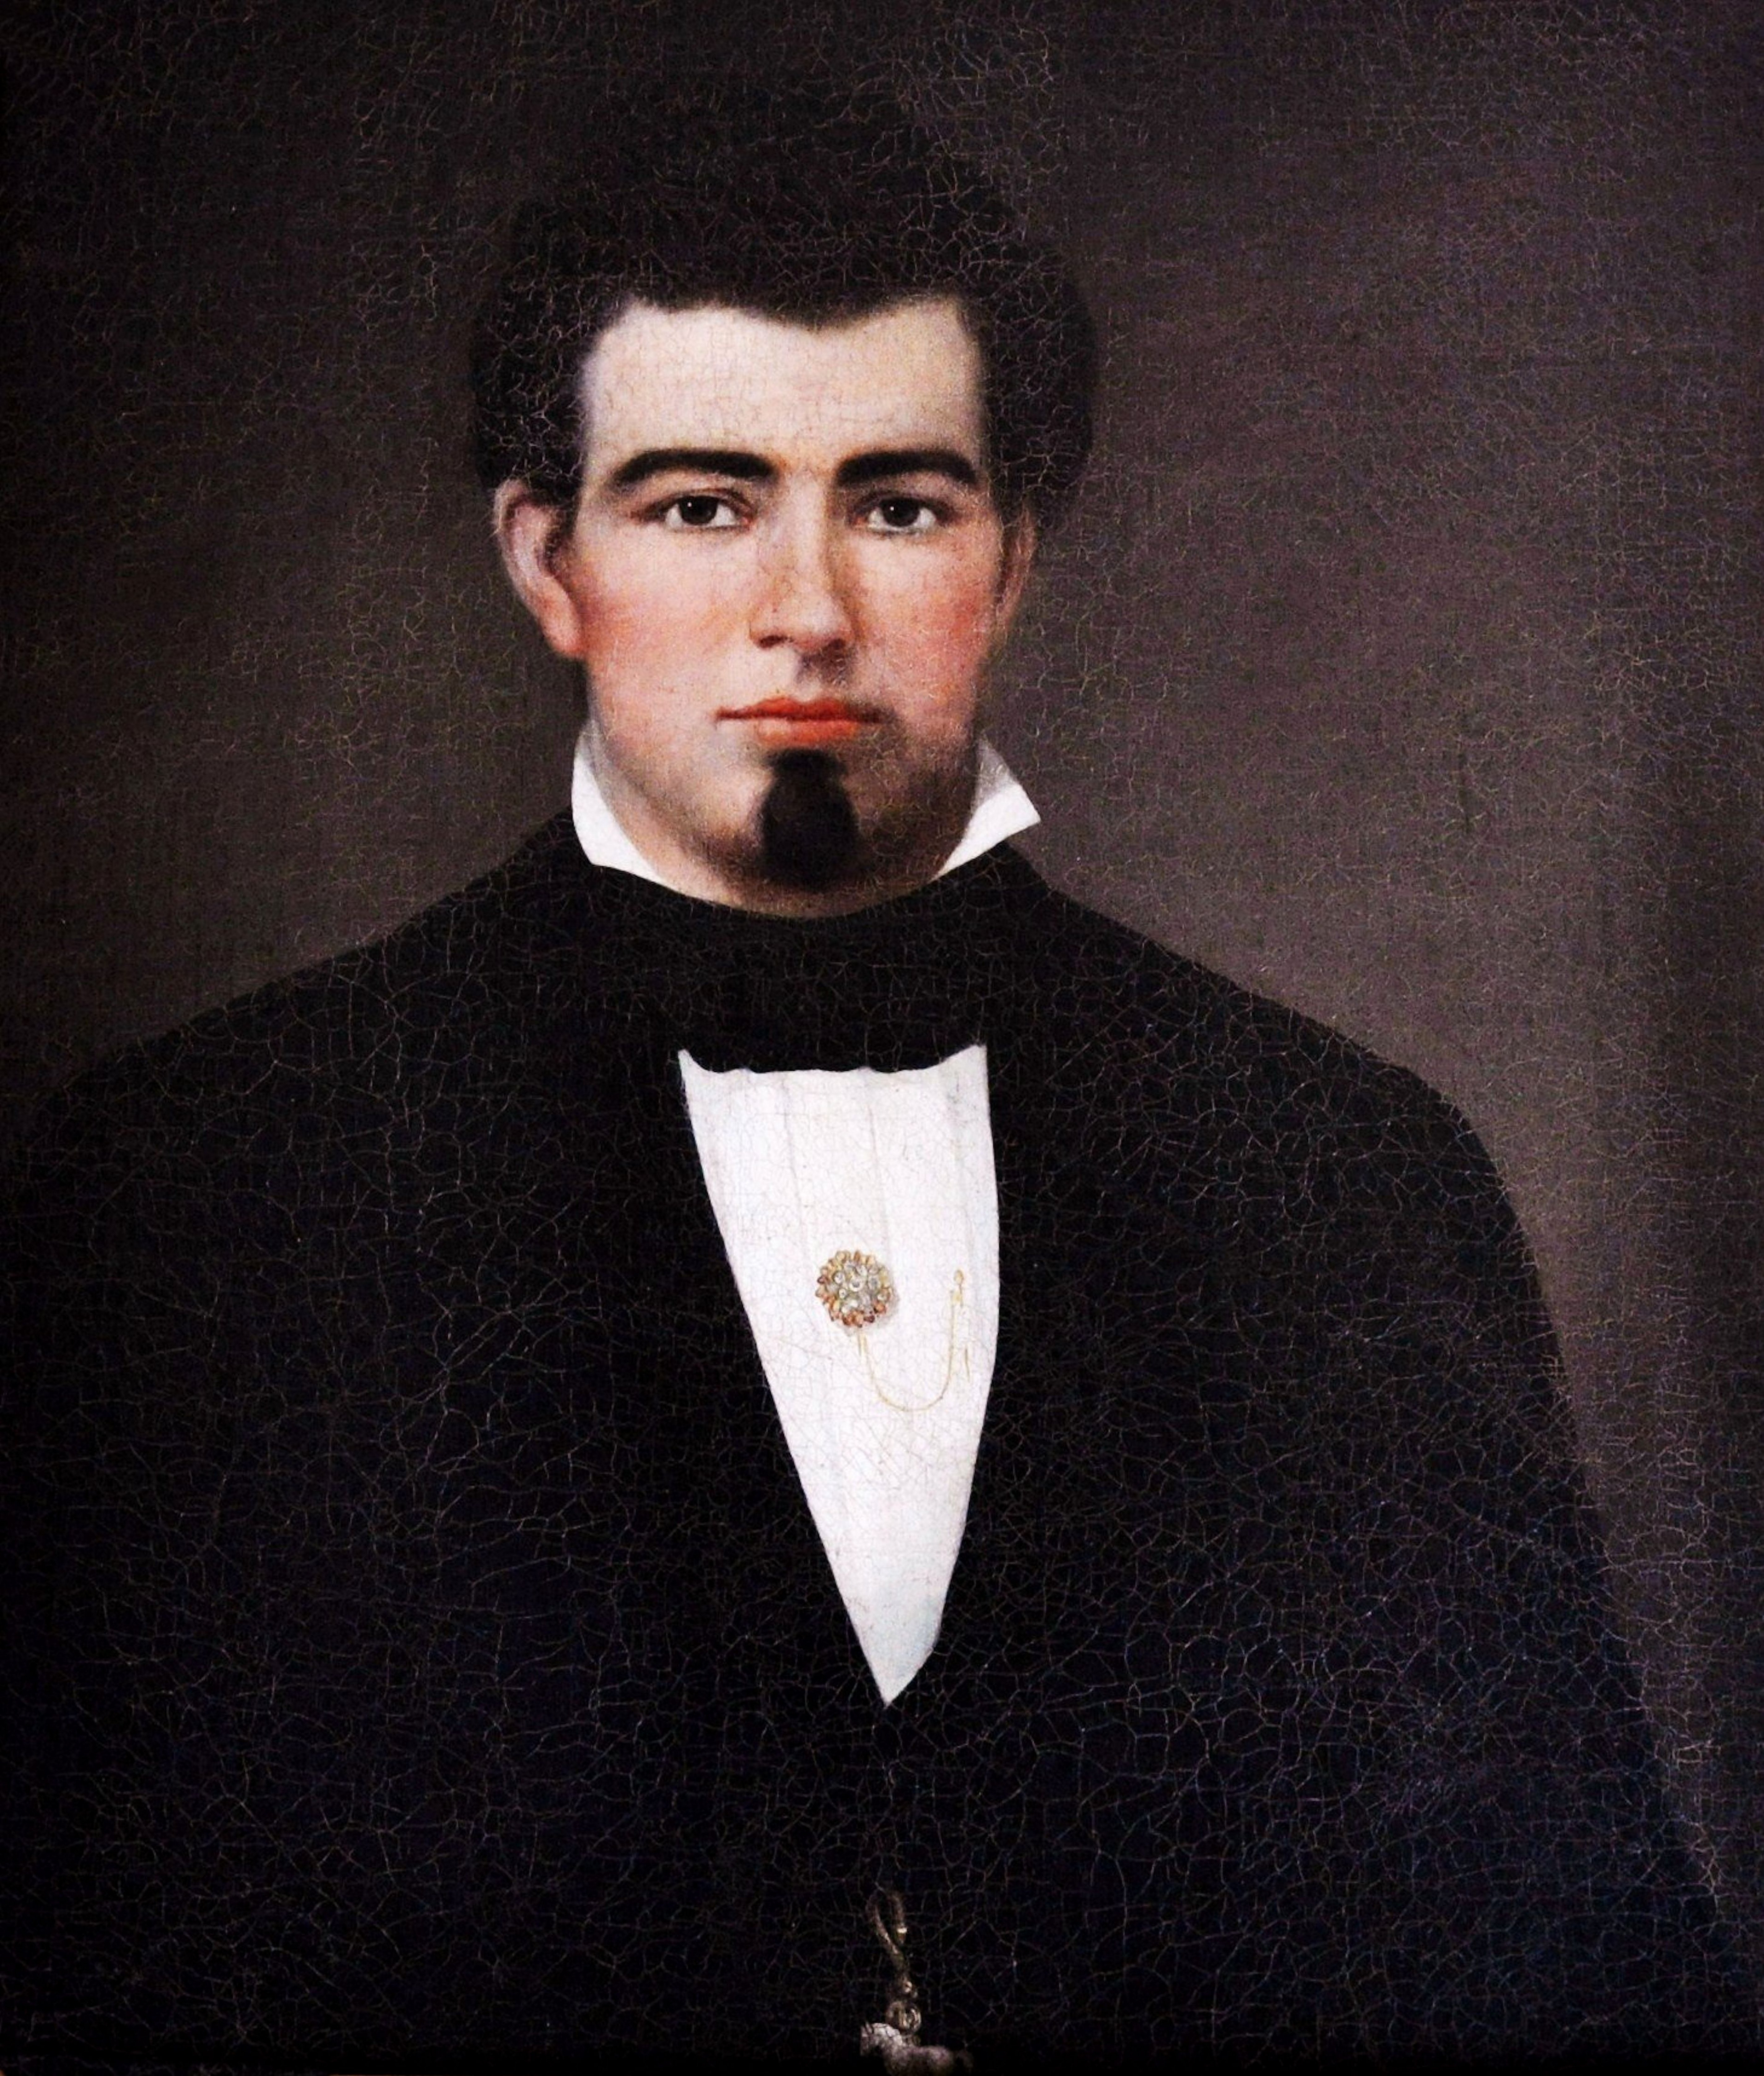 Portrait of John Morrissey on exhibit at his Canfield Casino in Saratoga Springs, N.Y (Saratoga Springs History Museum)